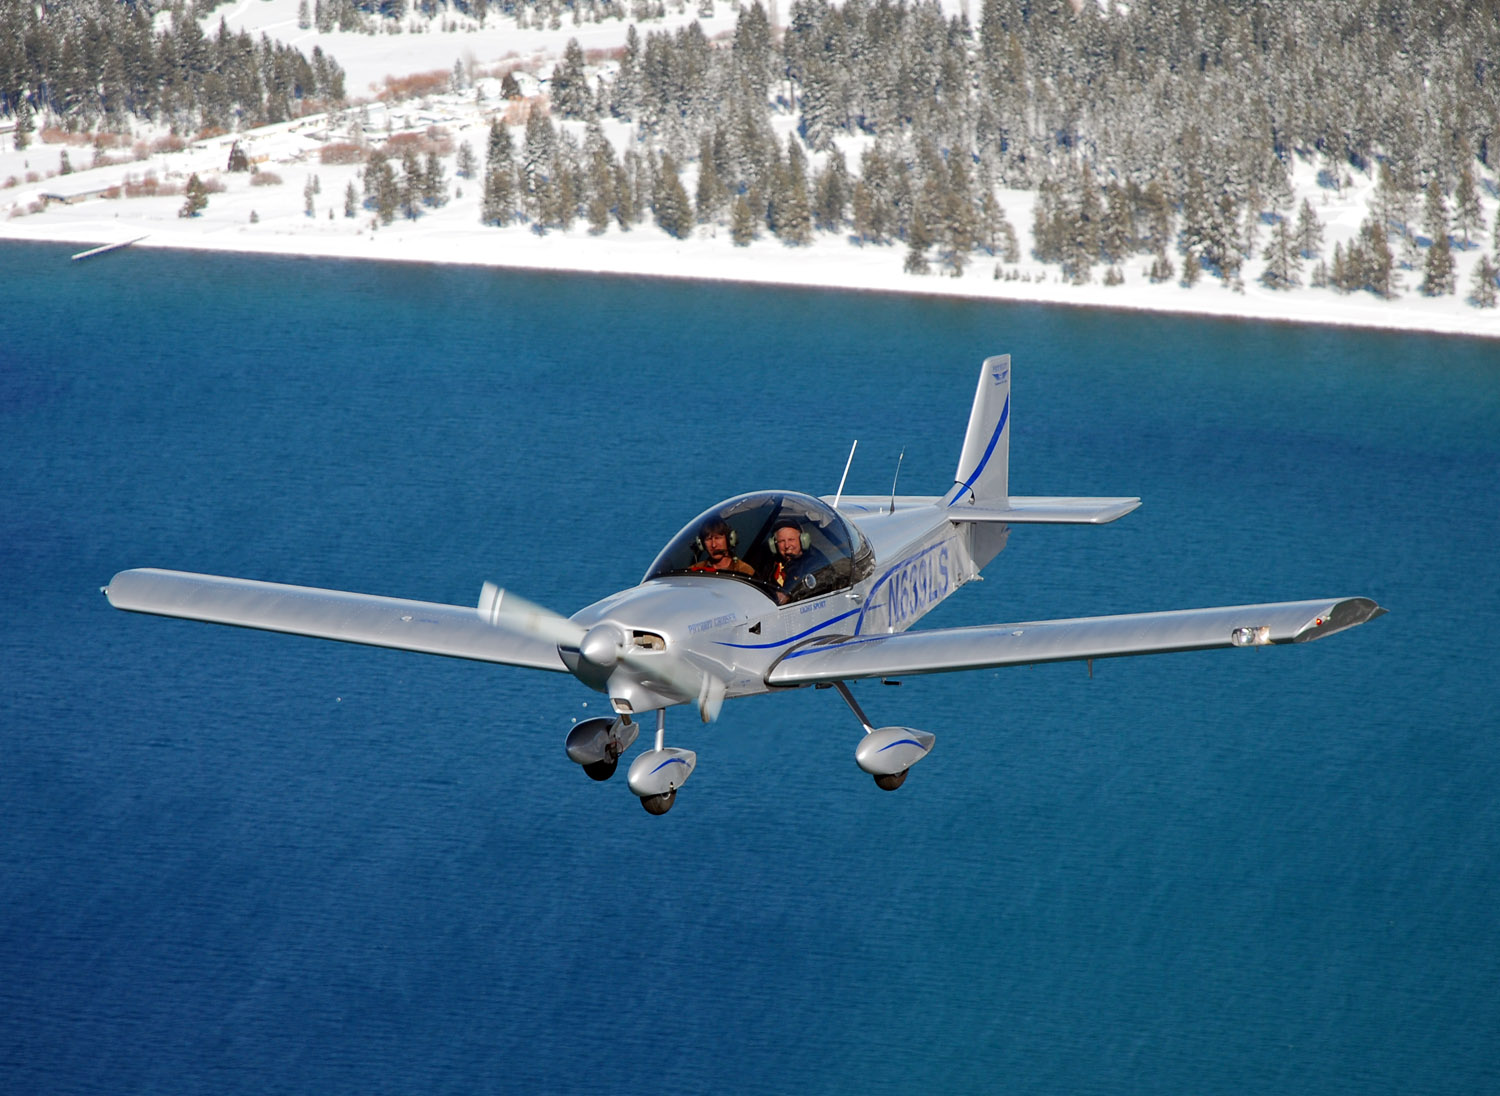 Zodiac 650 Above Lake Tahoe during winter flight